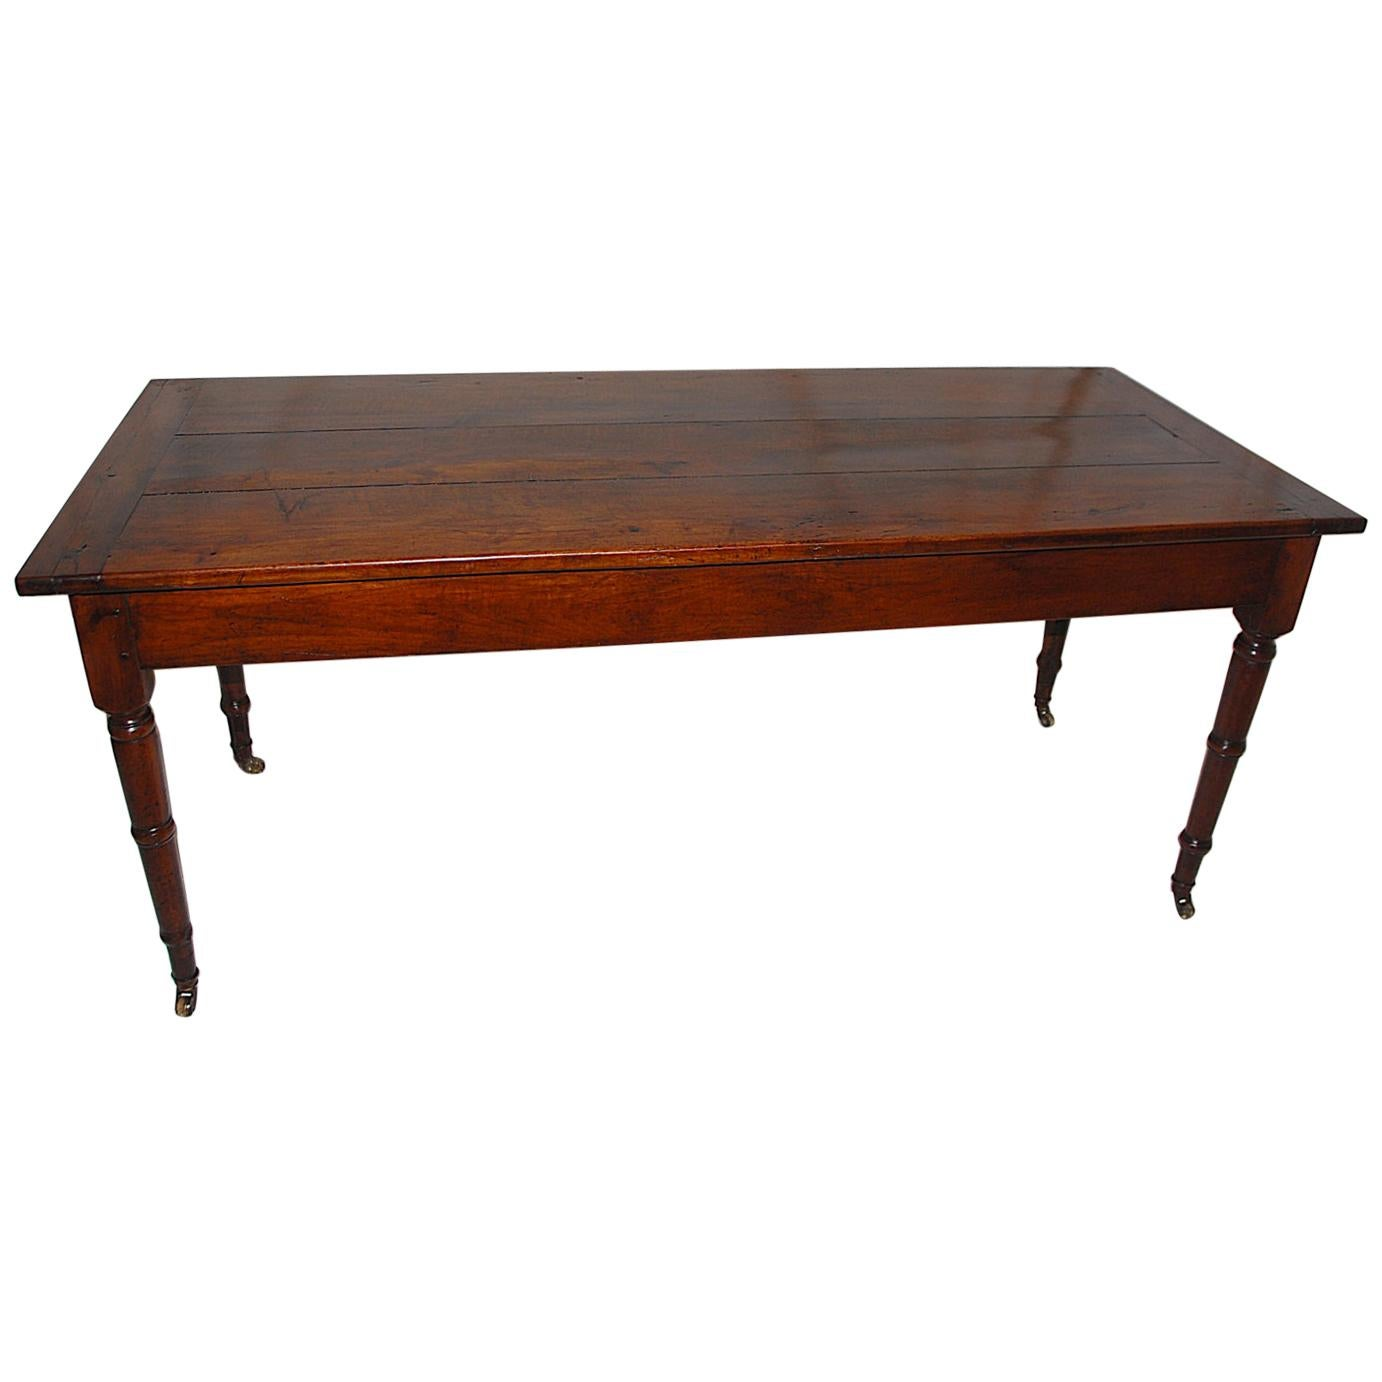 """French Provincial mid-19th Century Cherry Farmhouse Table 5'11"""" Long"""